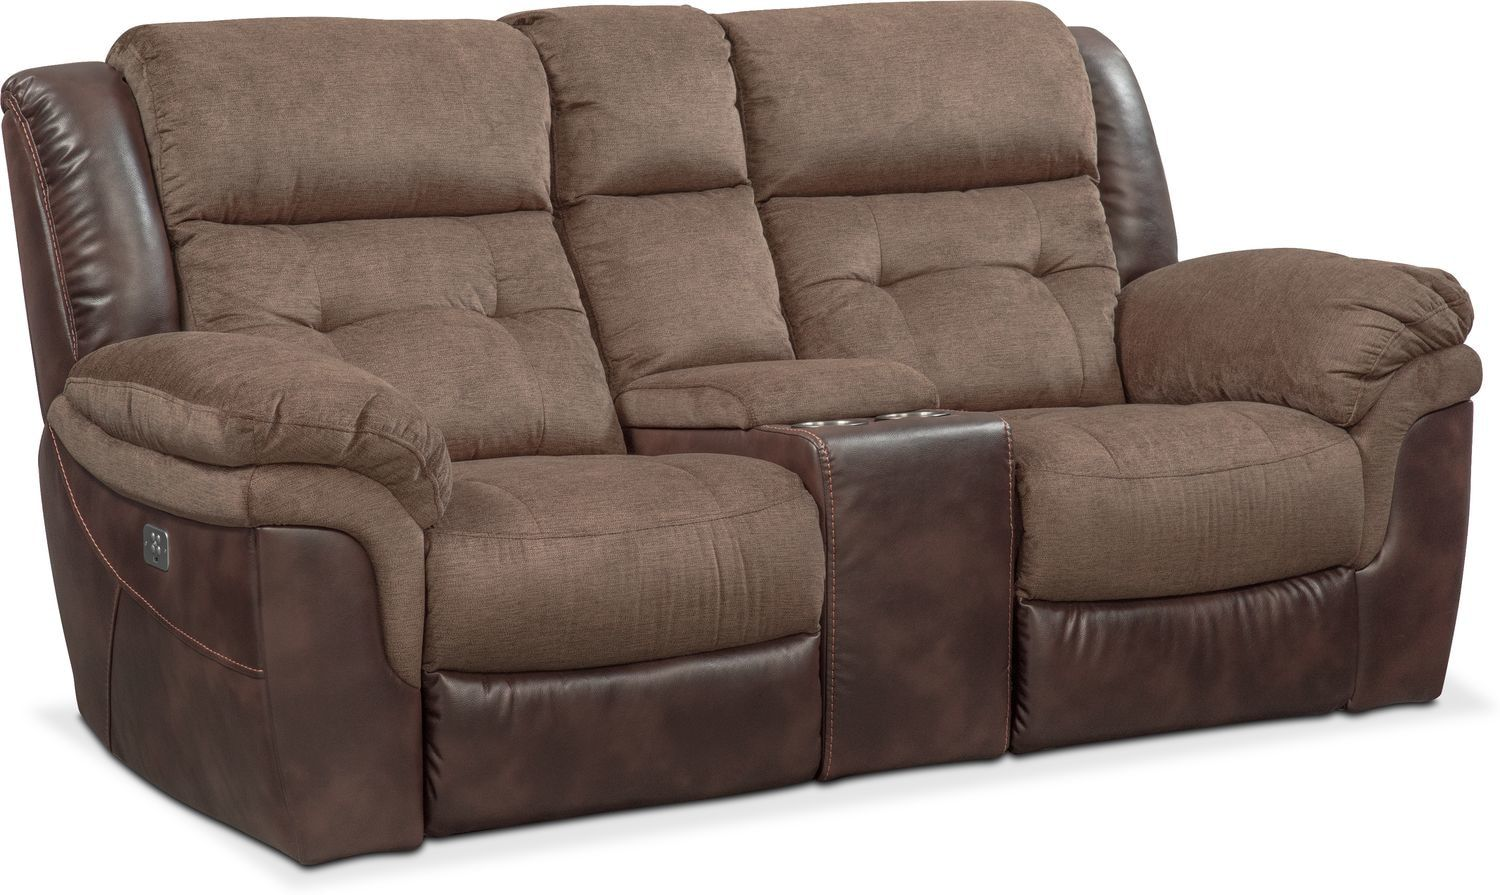 Astounding Tacoma Dual Power Reclining Loveseat With Console In 2019 Forskolin Free Trial Chair Design Images Forskolin Free Trialorg